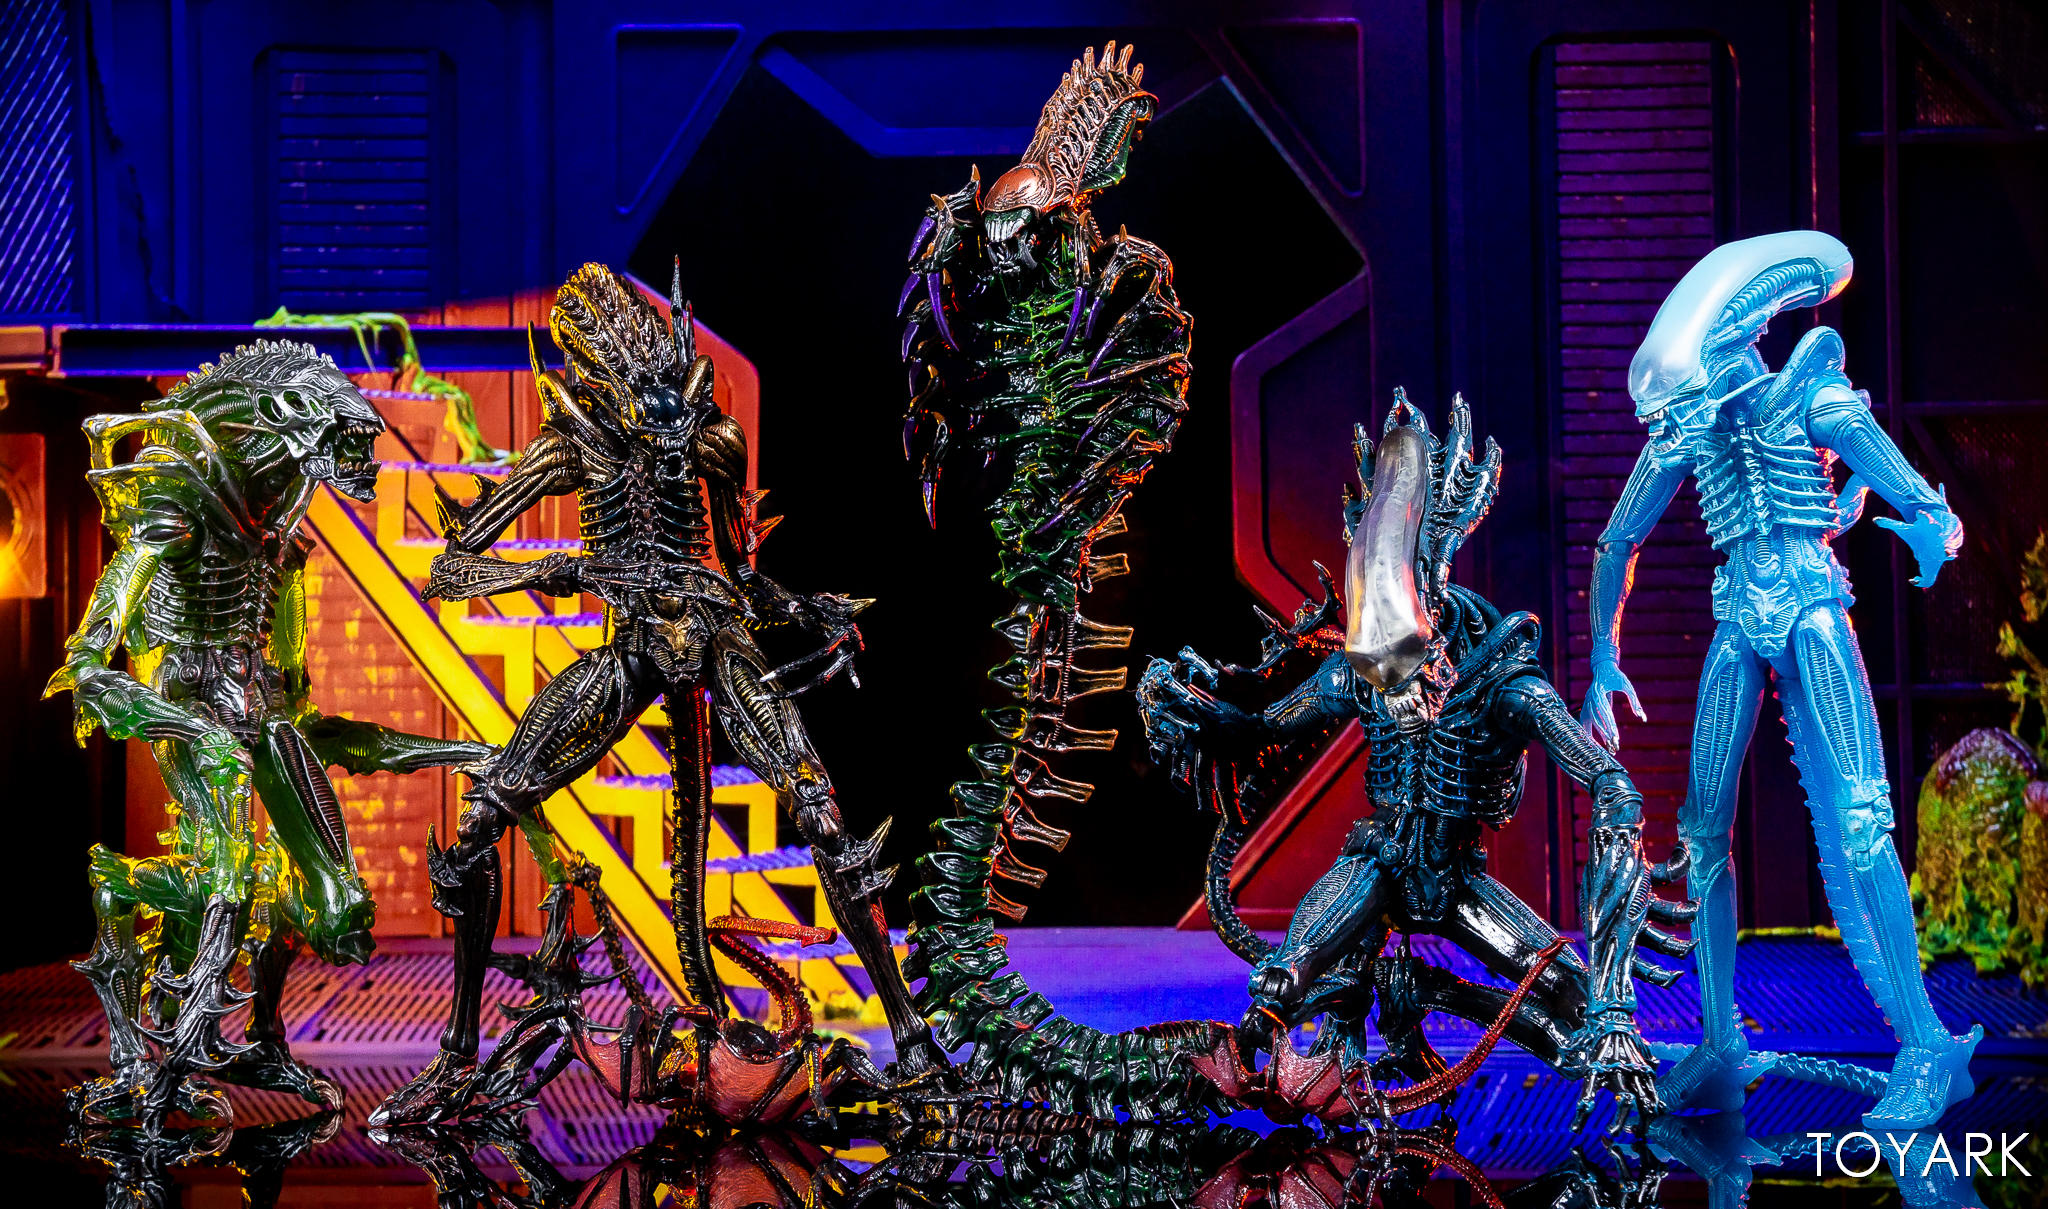 https://news.toyark.com/wp-content/uploads/sites/4/2019/02/Aliens-Series-13-NECA-Gallery-059.jpg